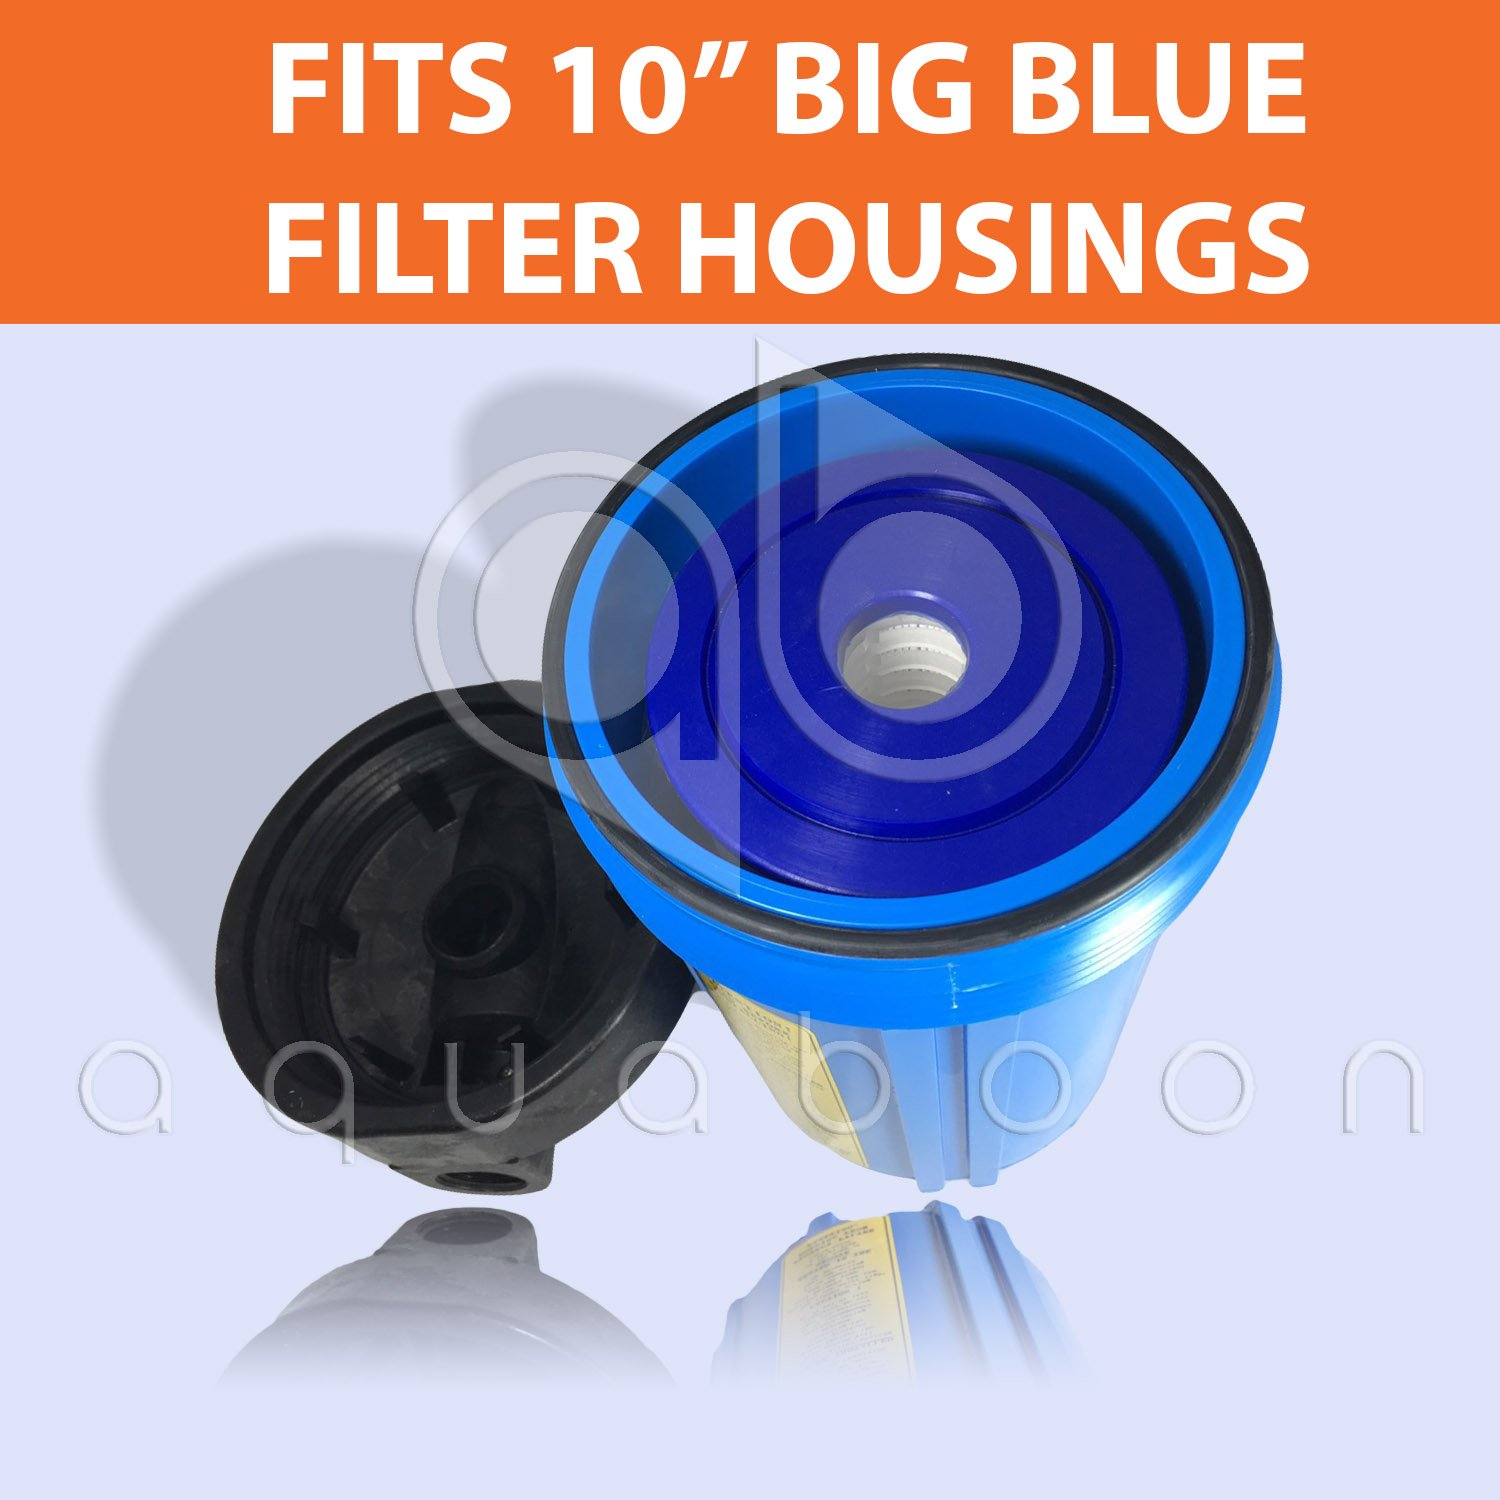 FM-BB-10-1A ECP1-BB WPC1FF975 Whole House Sediment Filtration Aquaboon 1 Micron 10 Big Blue Pleated Sediment Water Filter Replacement Cartridge Compatible with FM-BB-10-1 6-Pack HDC3001